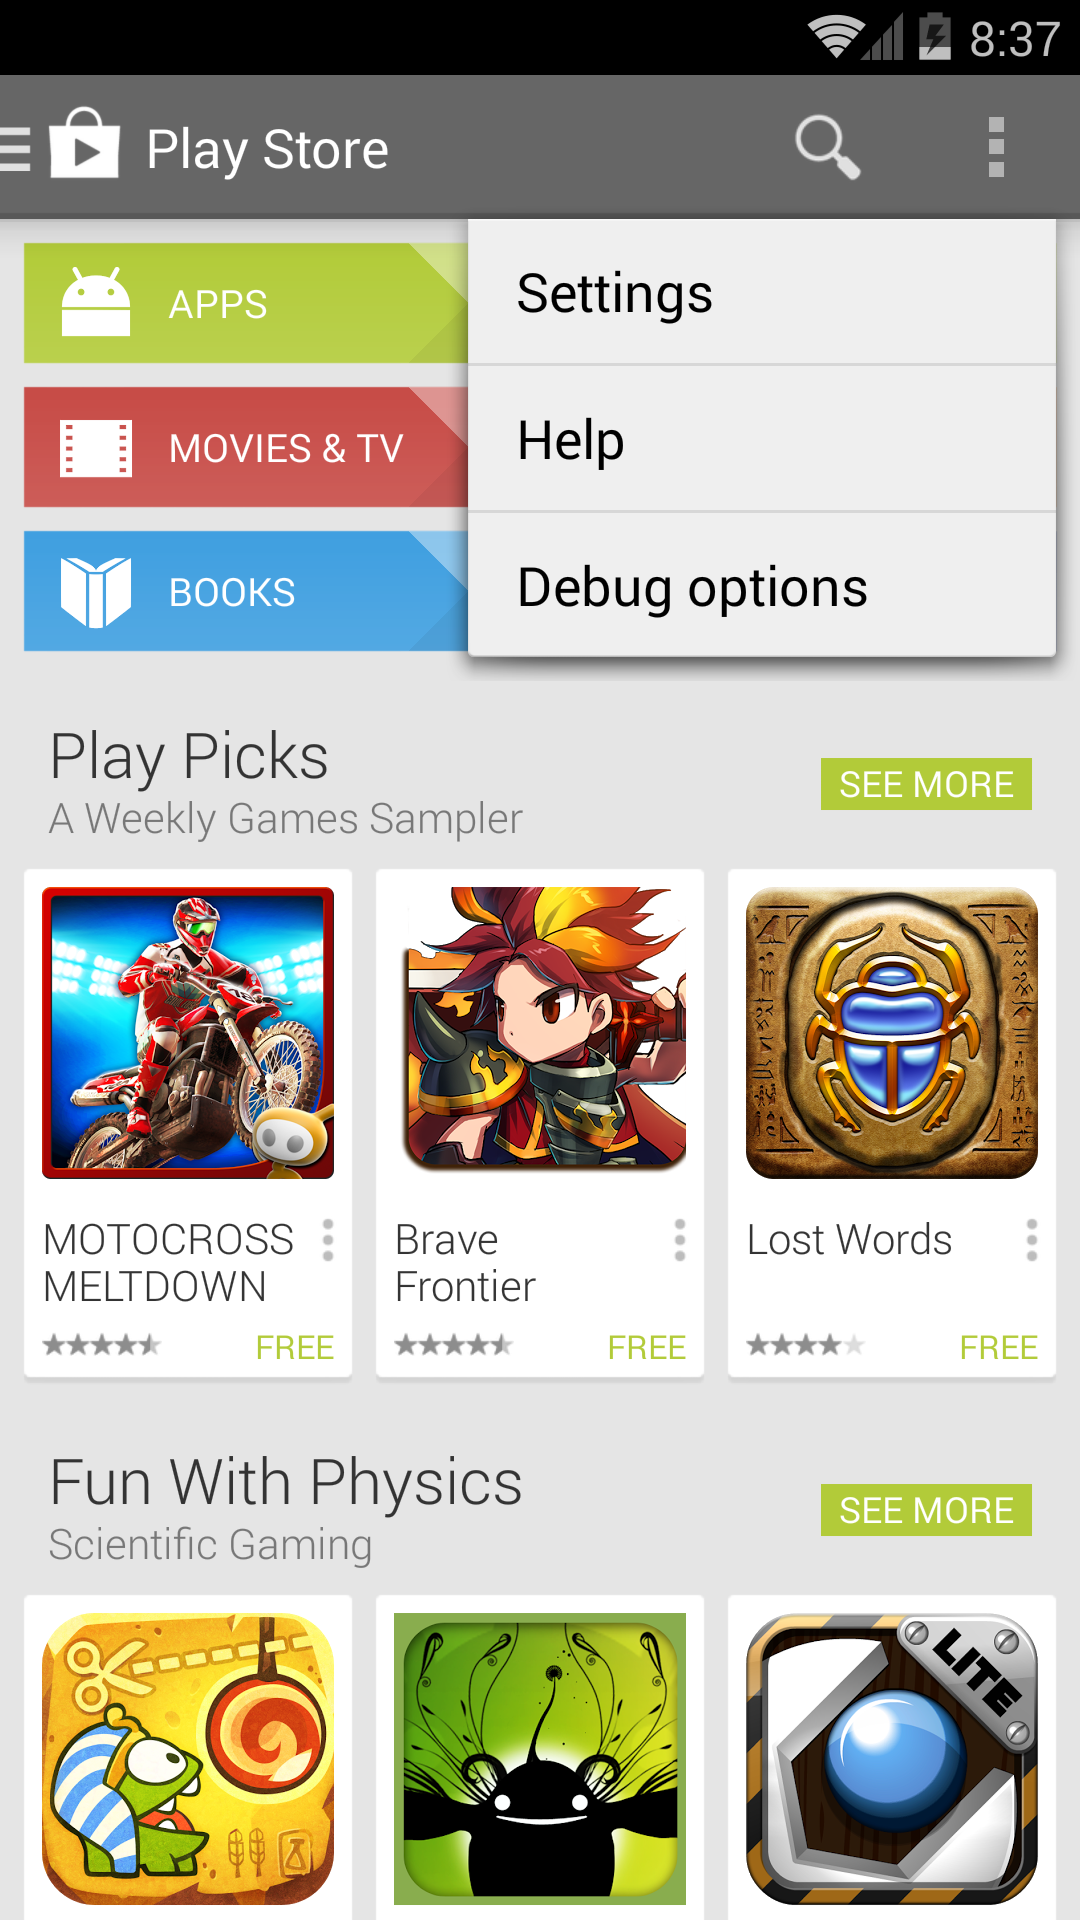 The google play store app has a hidden debug menu and Play app